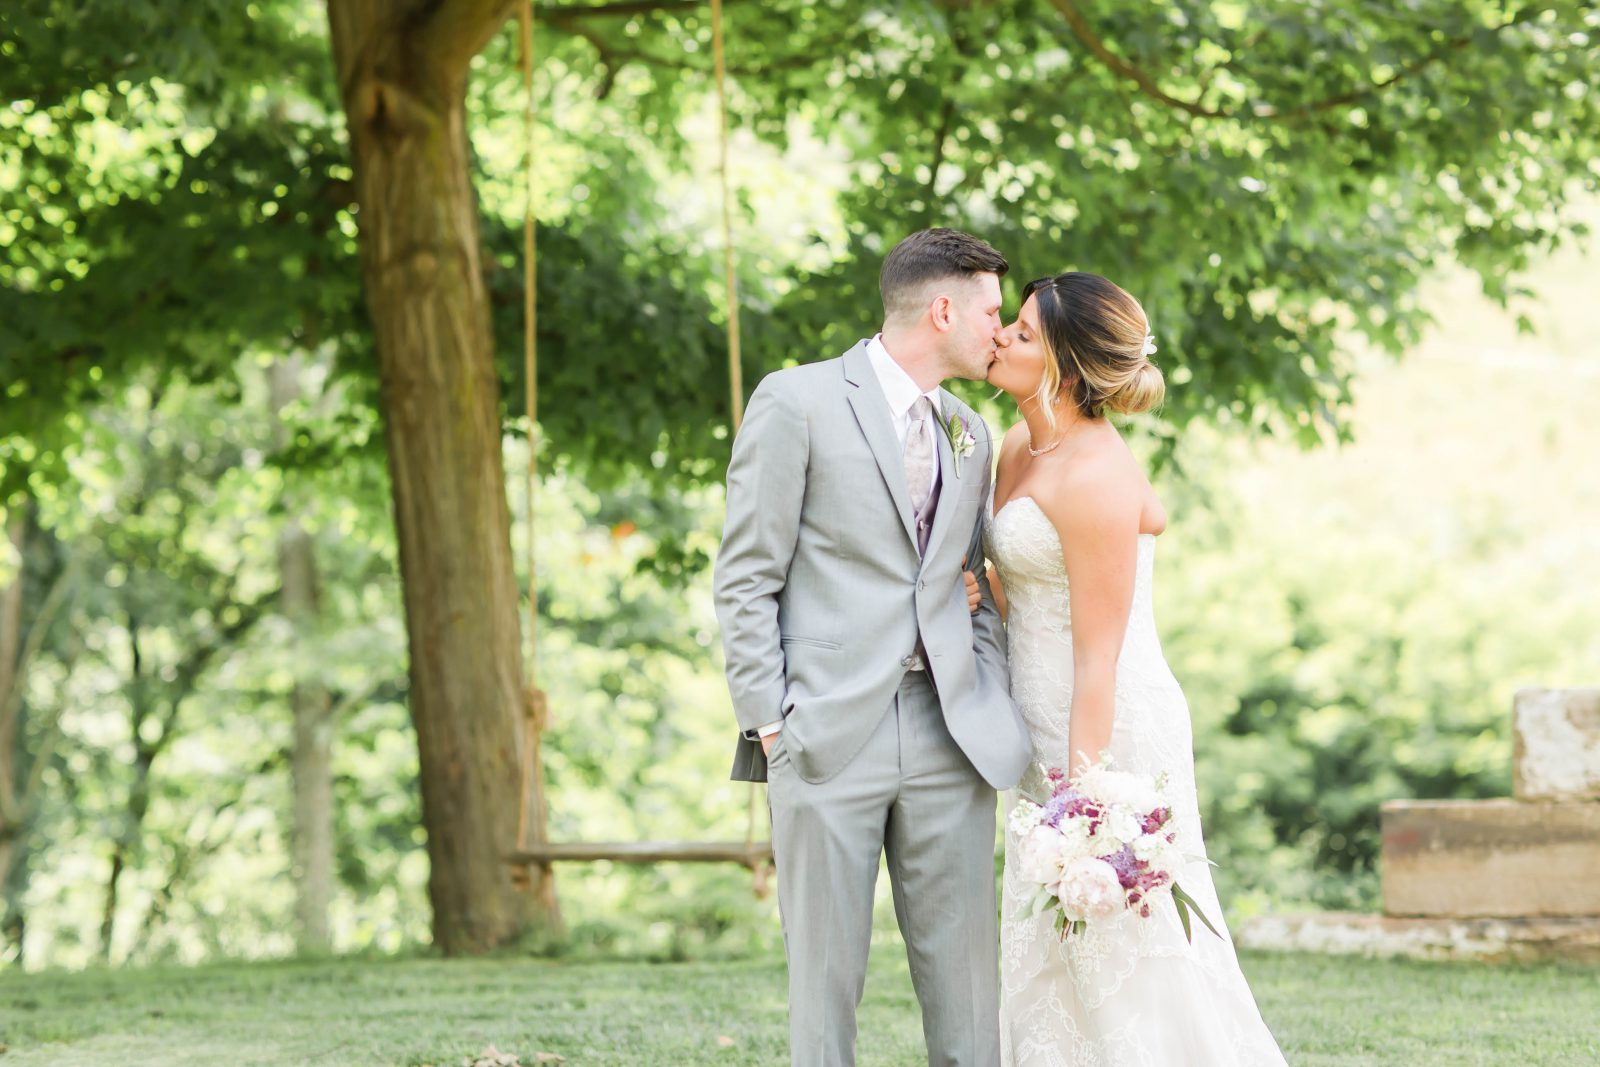 rivercrest-farm-summer-wedding-loren-jackson-photography-32